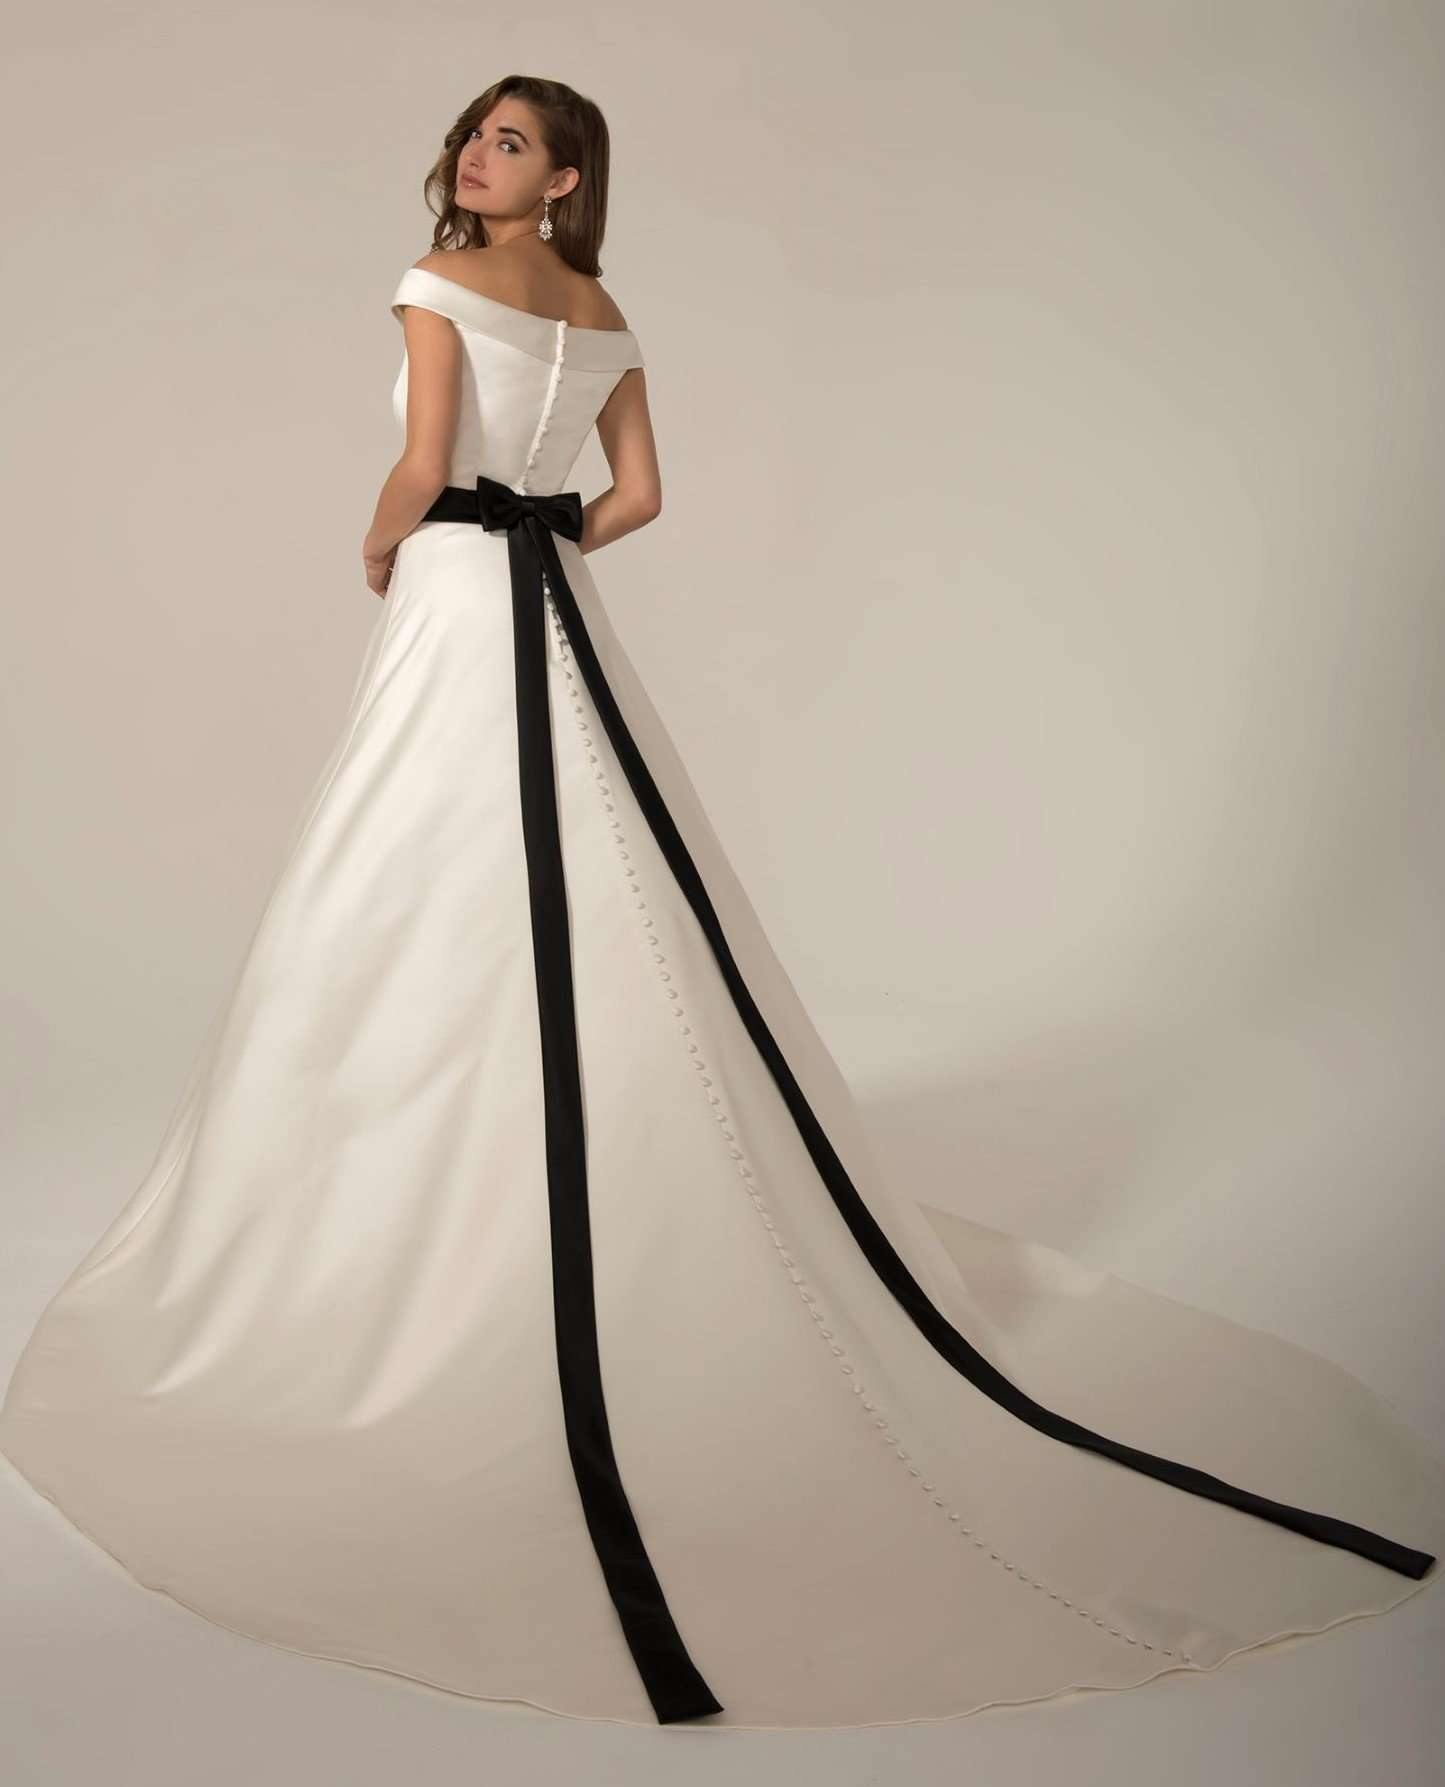 VENUS BRIDAL - Evelyn - Adore Bridal and Occasion Wear